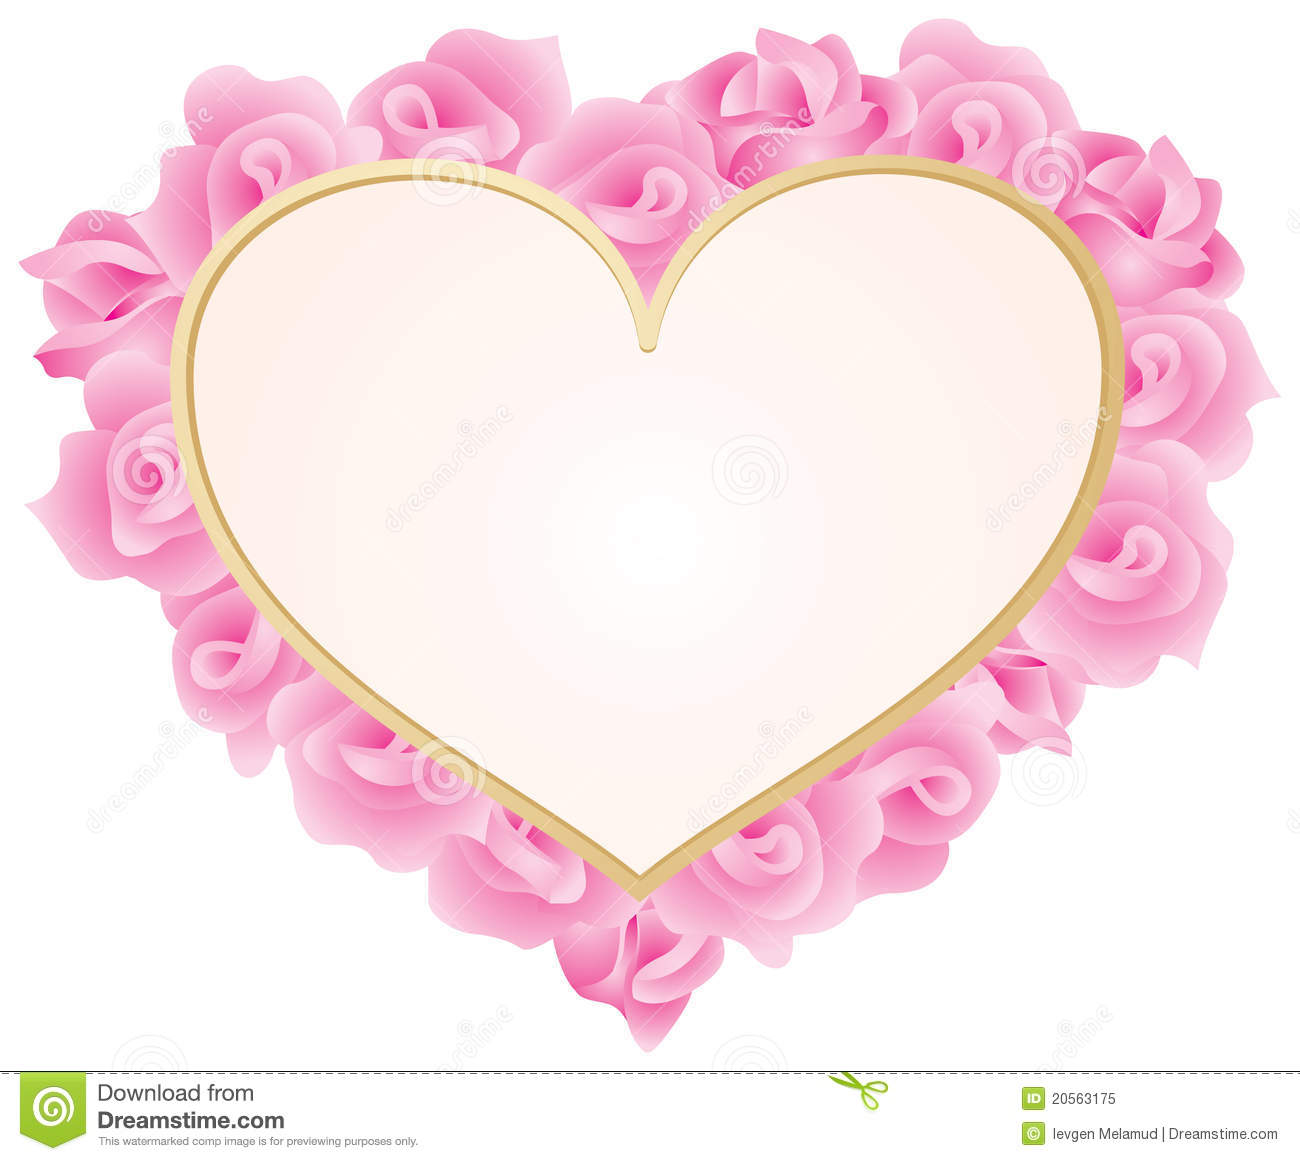 Pin Frames Roses Love Heart Cake on Pinterest